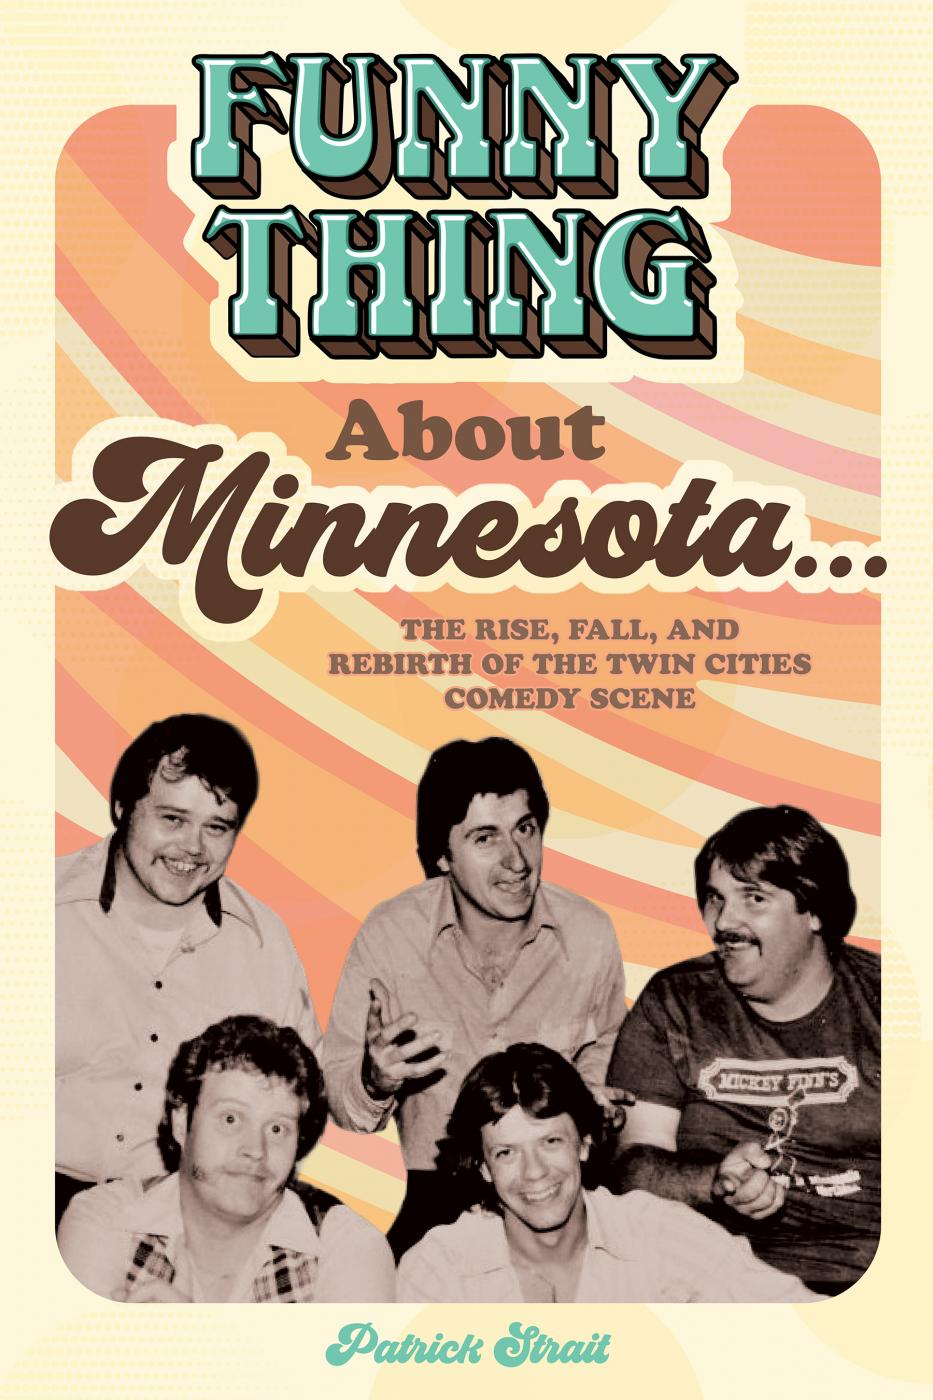 Funny thing about Minnesota book.